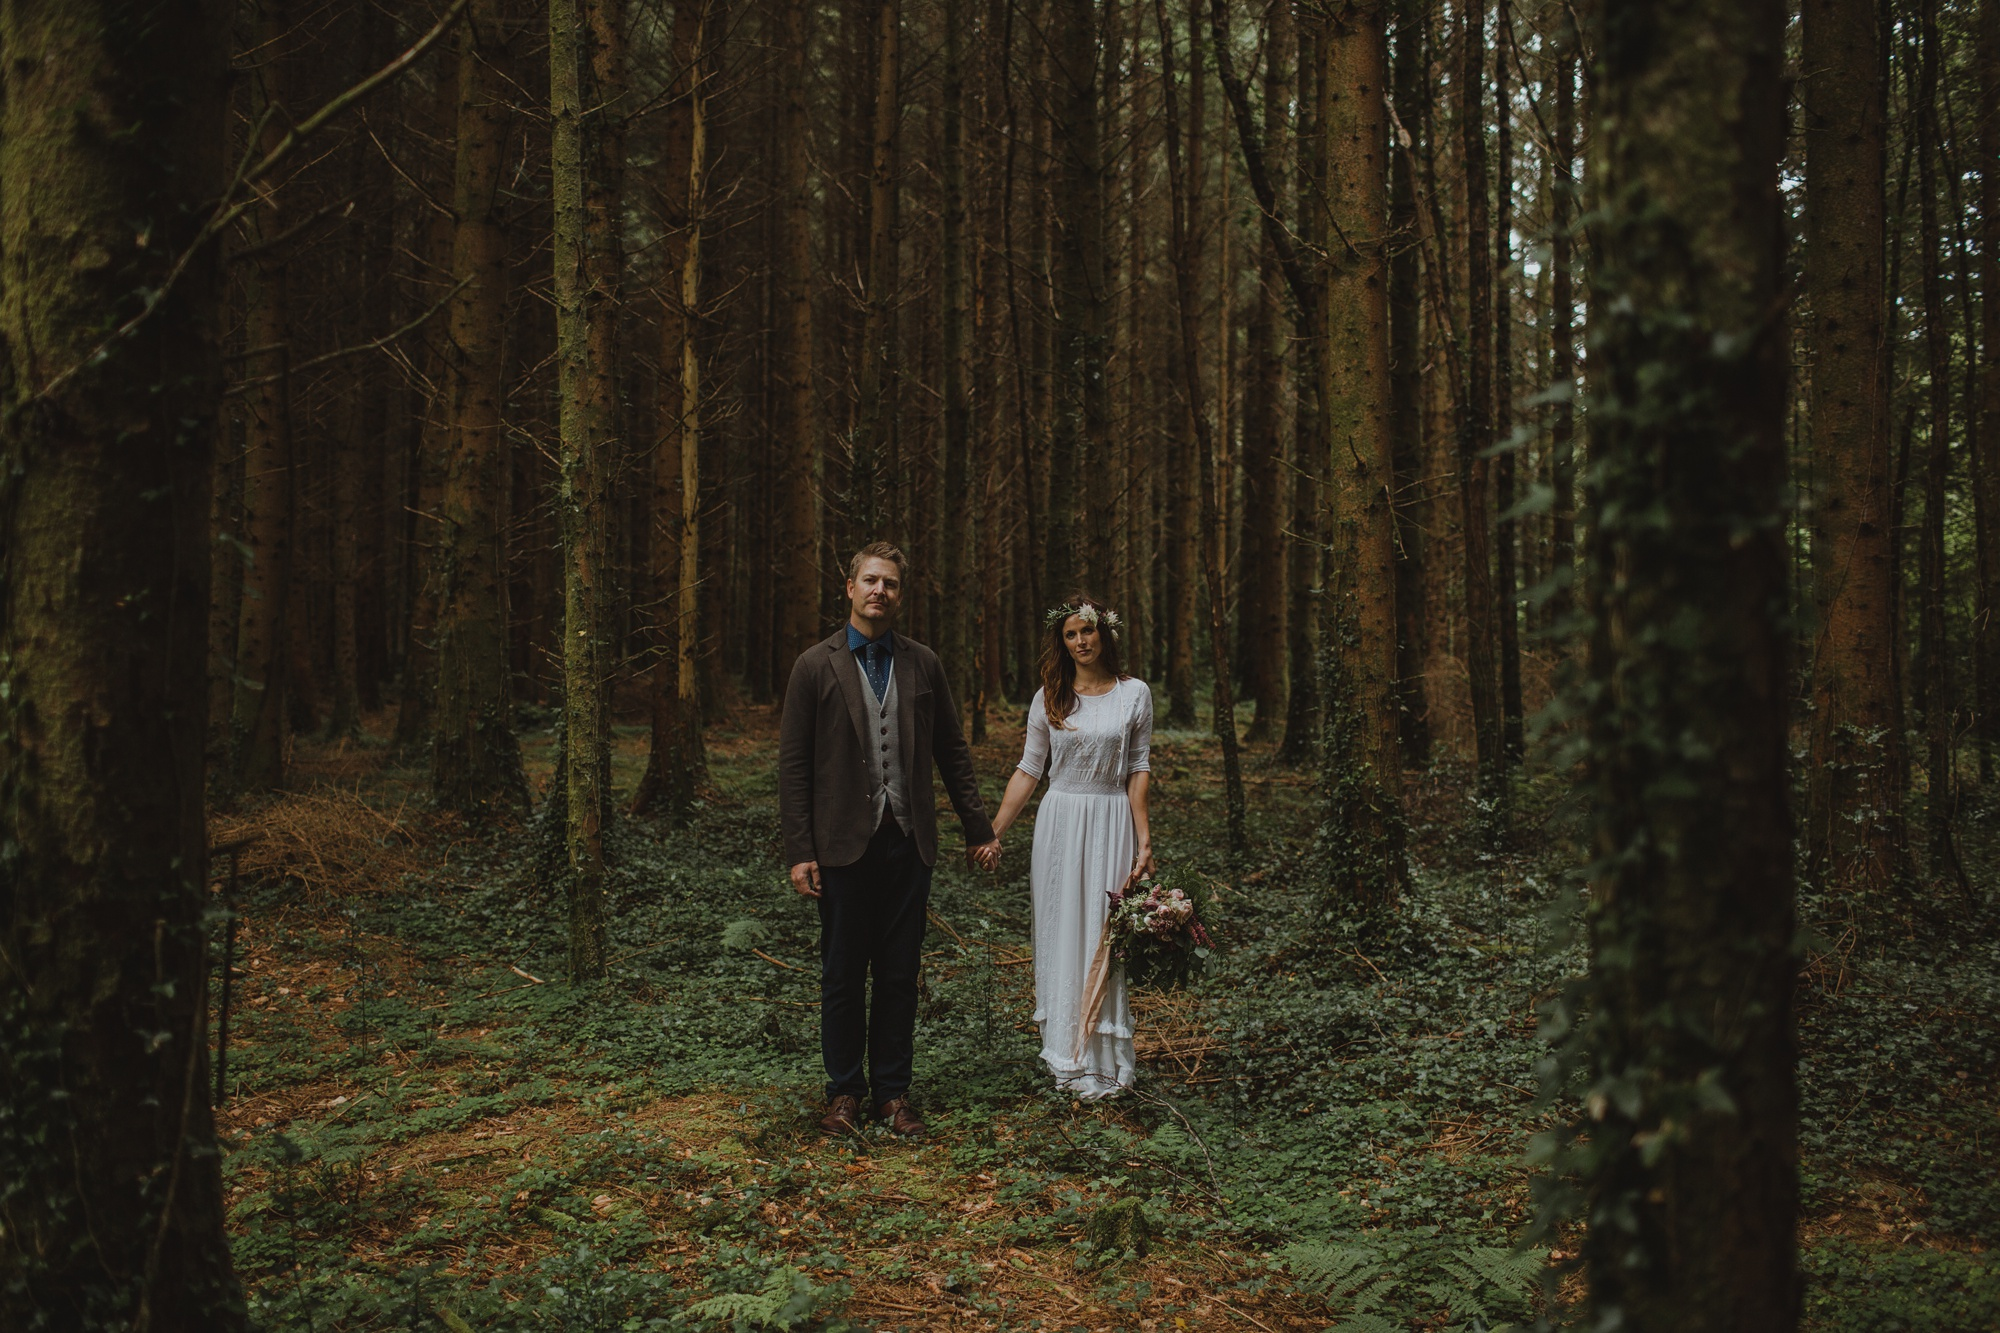 Glengariff wedding by Paula O'hara Photography on how to submit to a blog on we are the wanderers